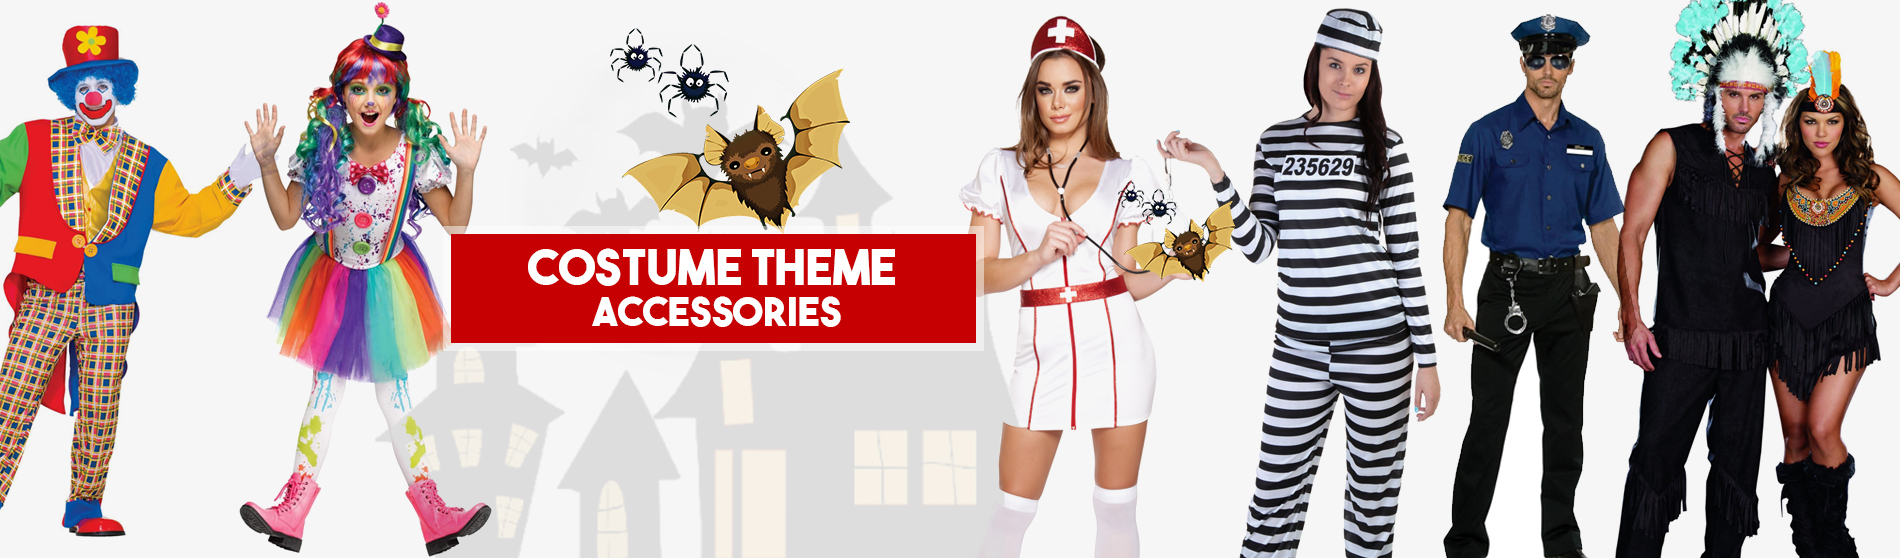 Costume-Theme-Accessories